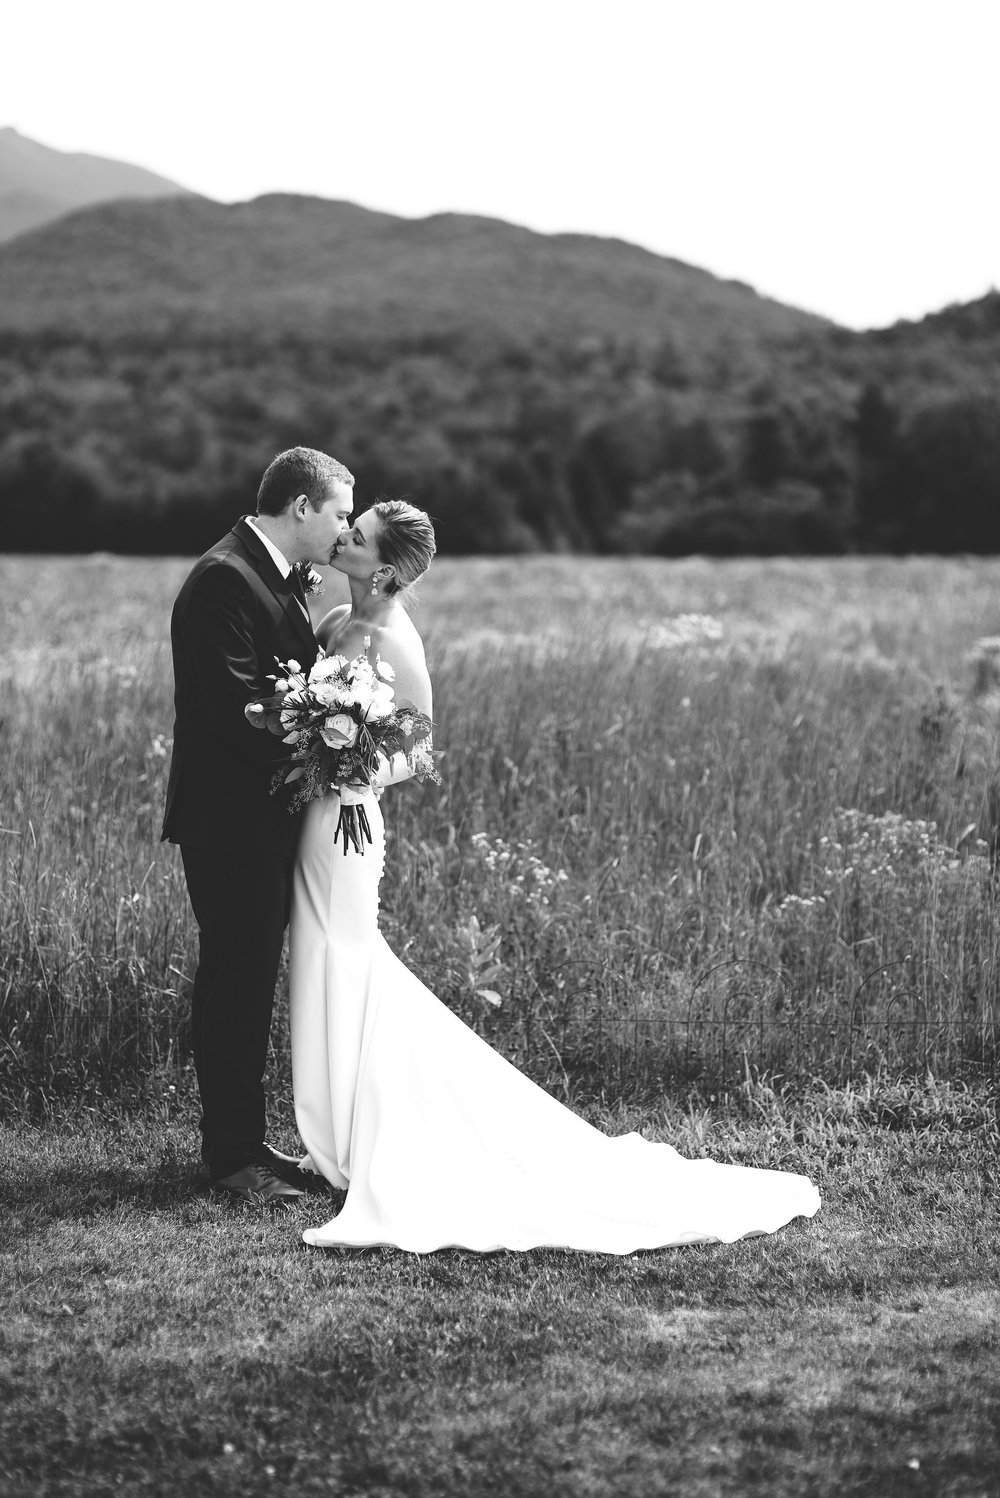 savagewedding-431.jpg